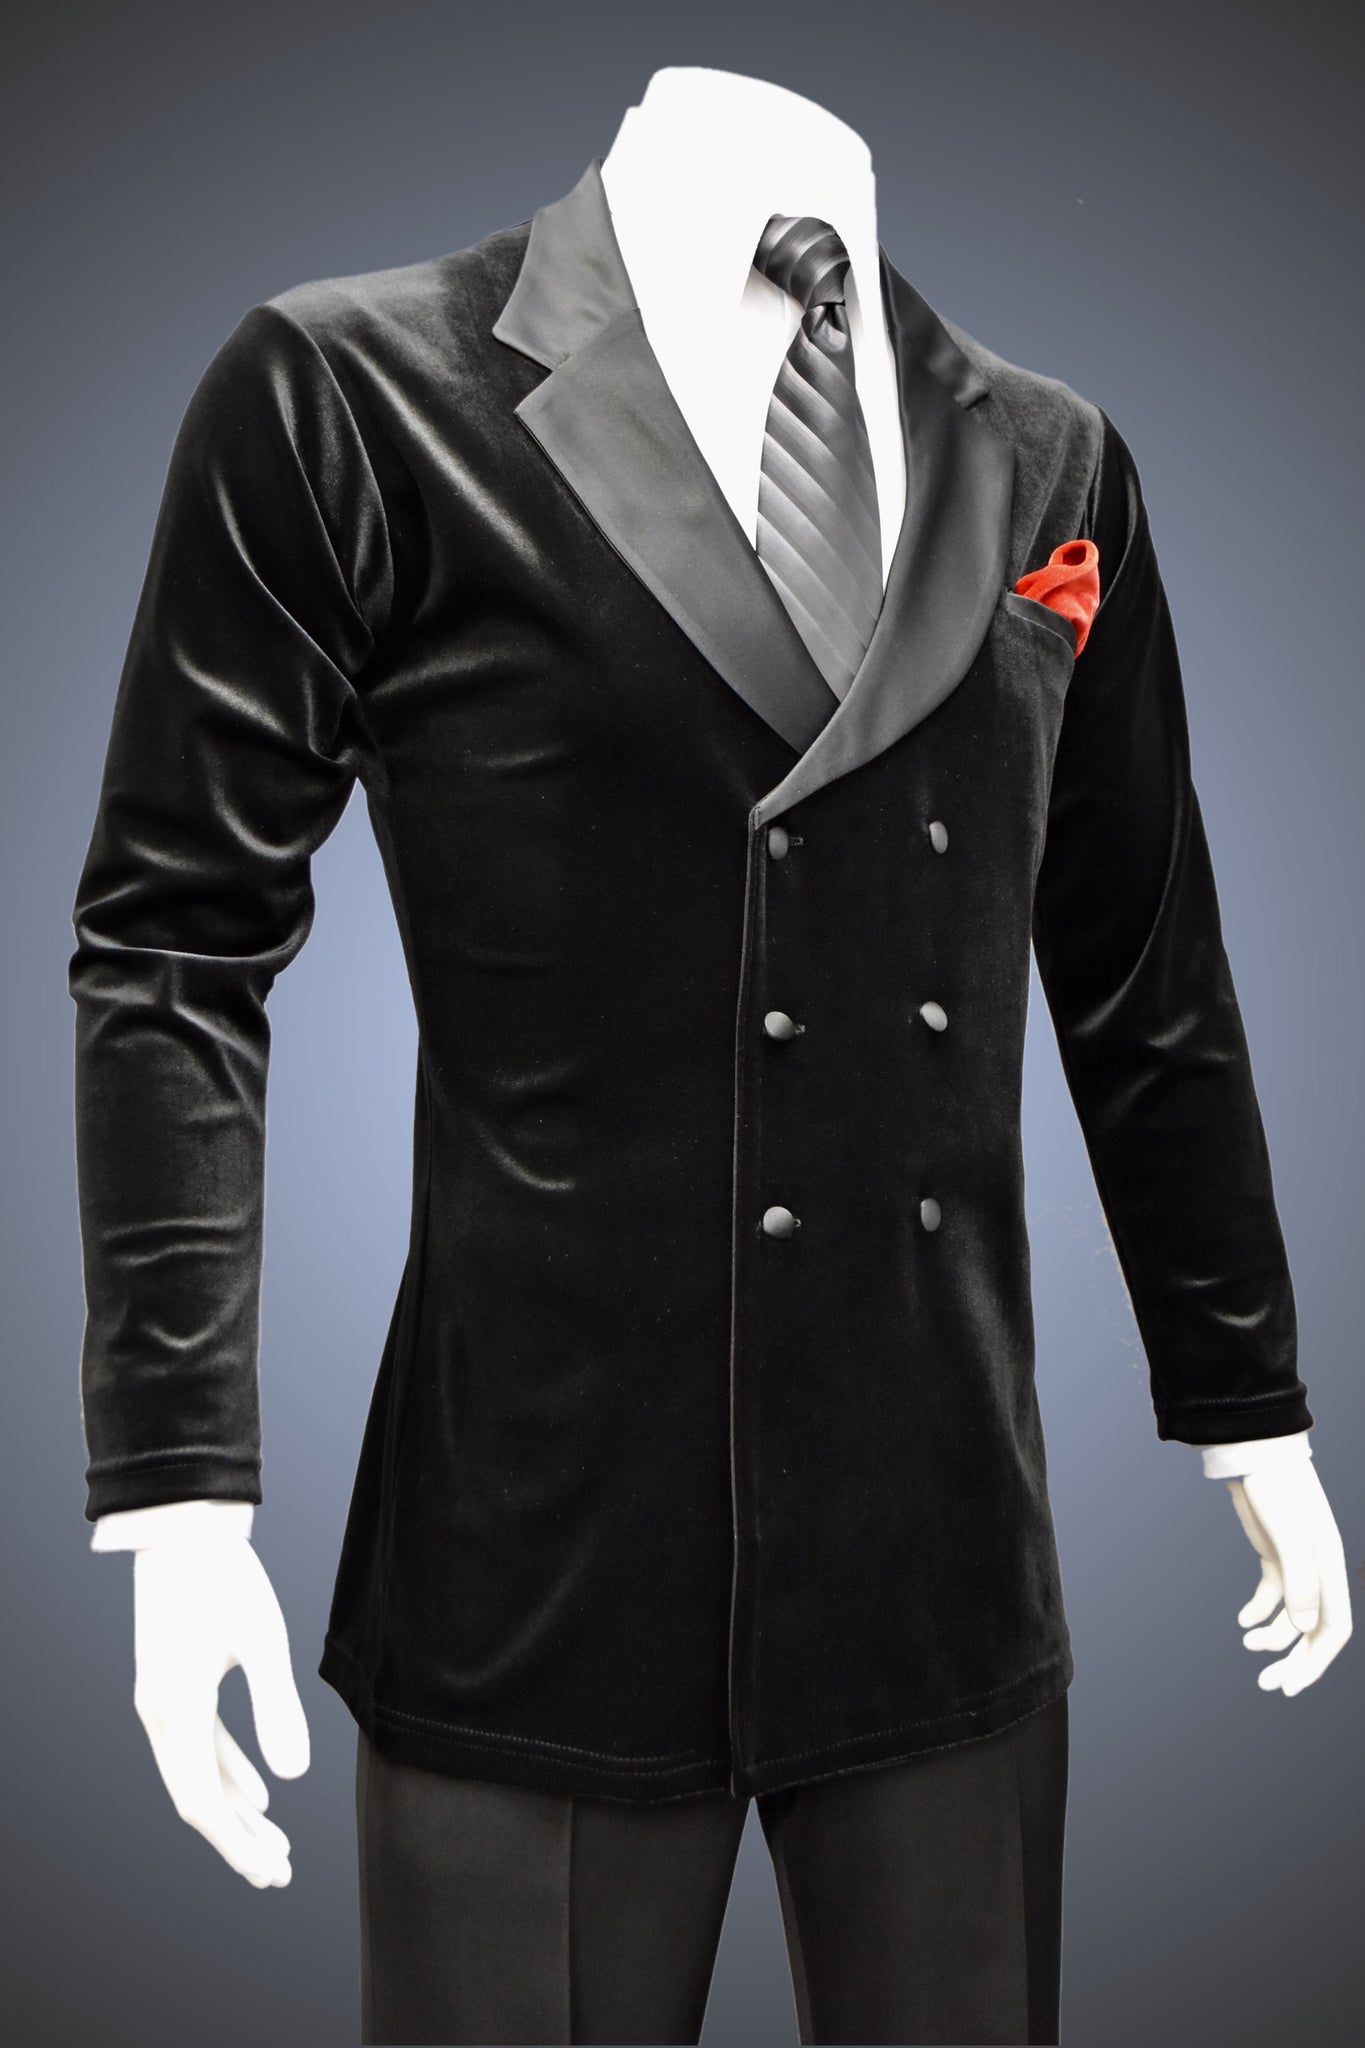 Men's Double-Breasted Velvet Lounge Smooth Jacket - JK101 - Jacket by Randall Ready